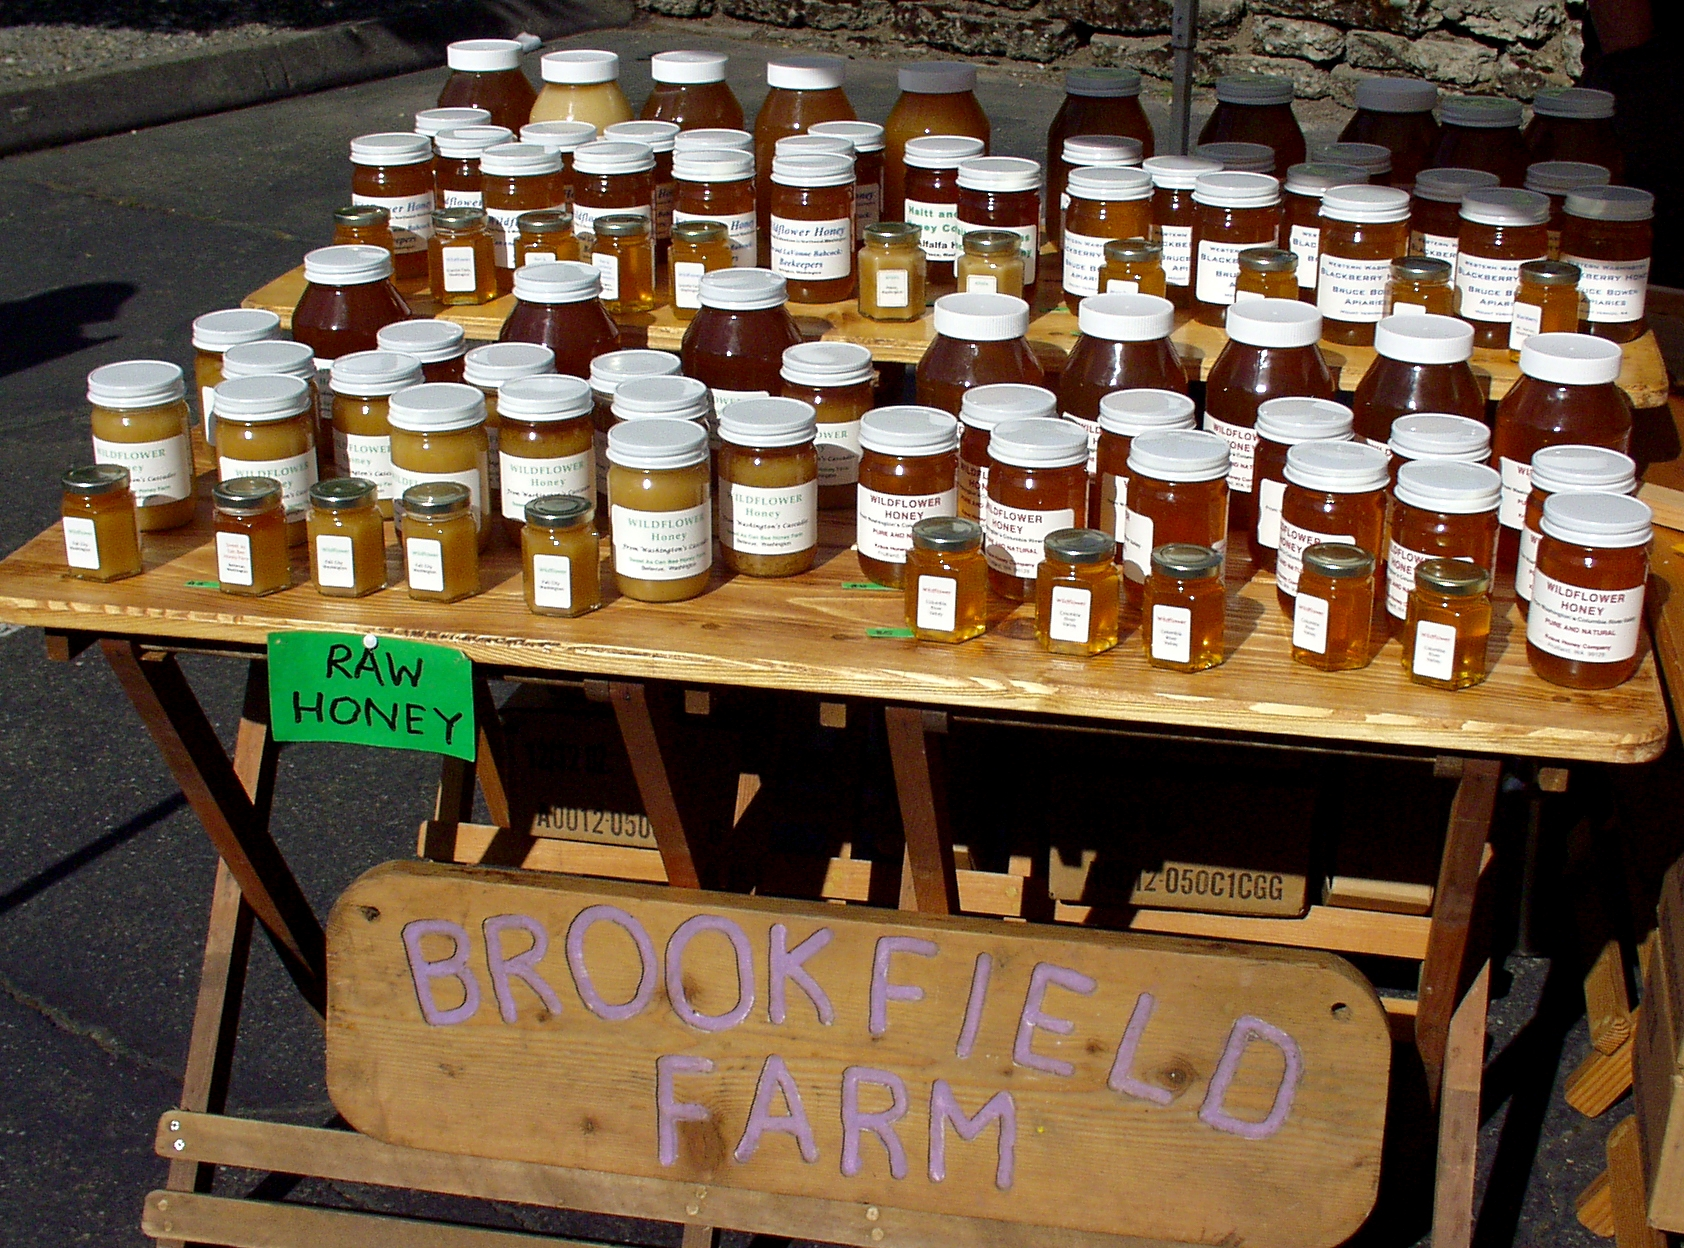 Wildflower honey from Brookfield Farm. Photo copyright 2009 by Zachary D. Lyons.